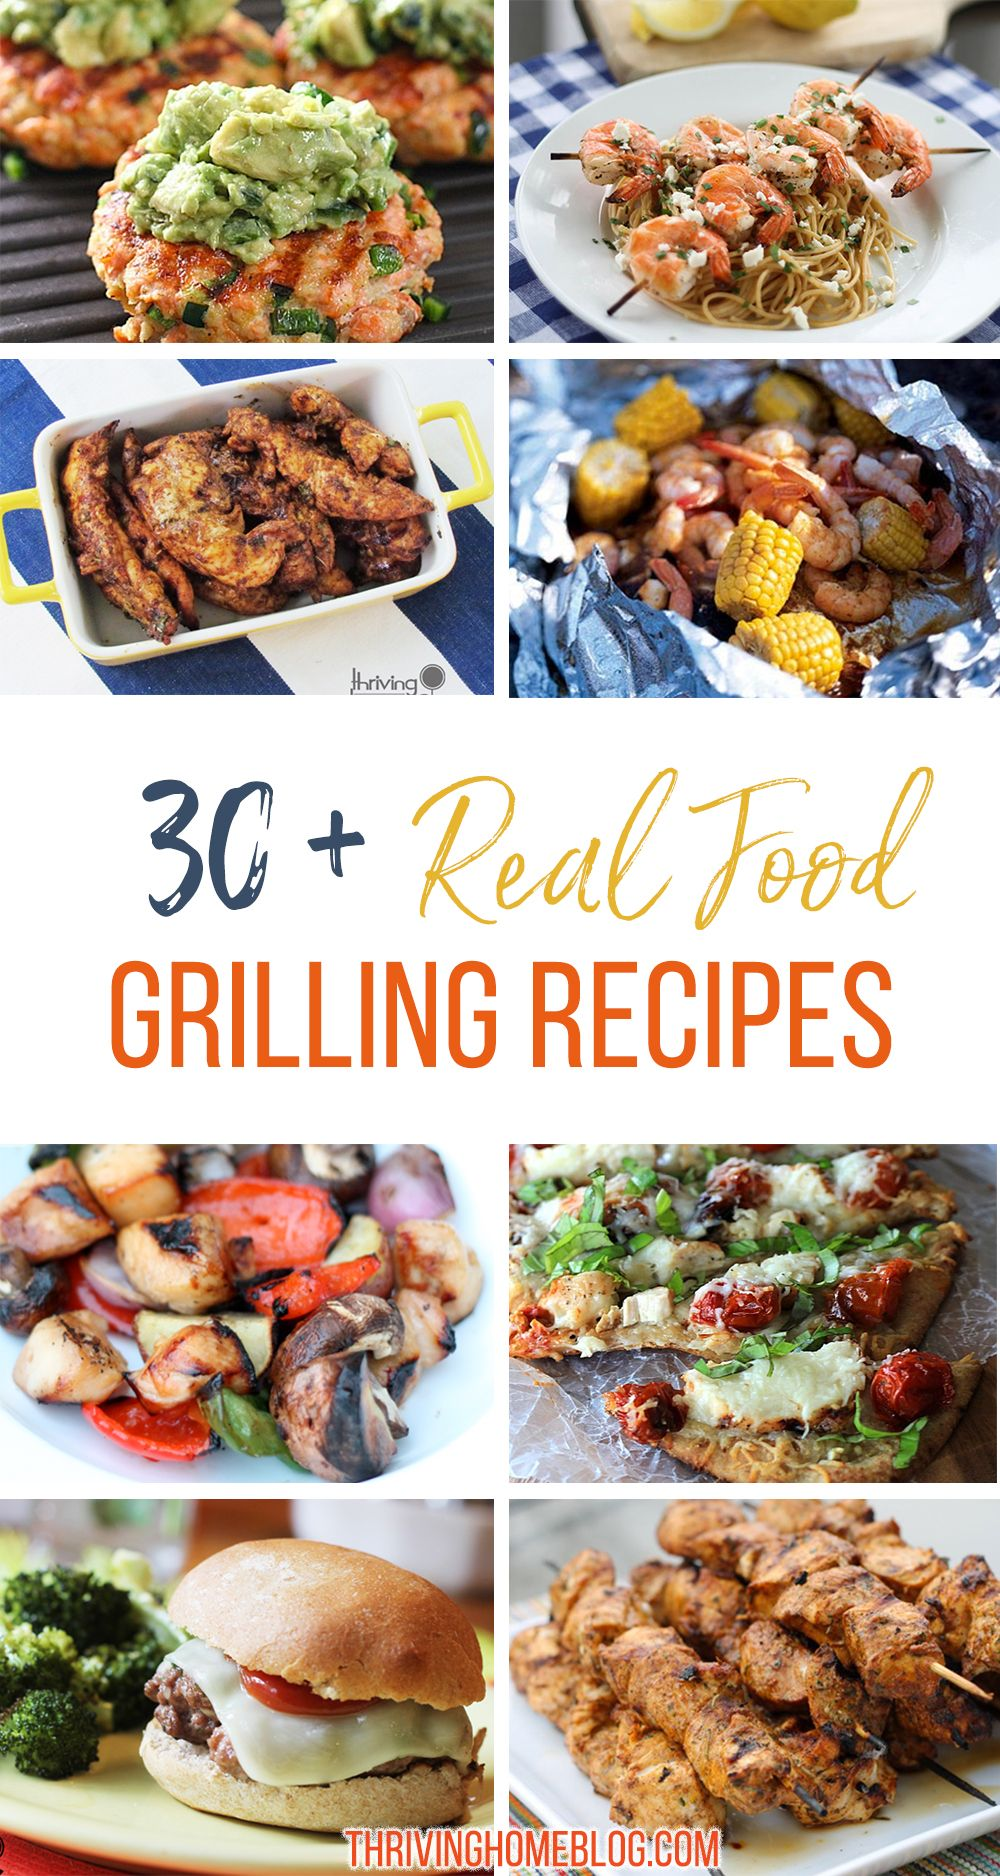 A great round up of real food grilling recipe ideas great dinner a great round up of real food grilling recipe ideas great dinner ideas lots of freezer friendly dinners too forumfinder Image collections